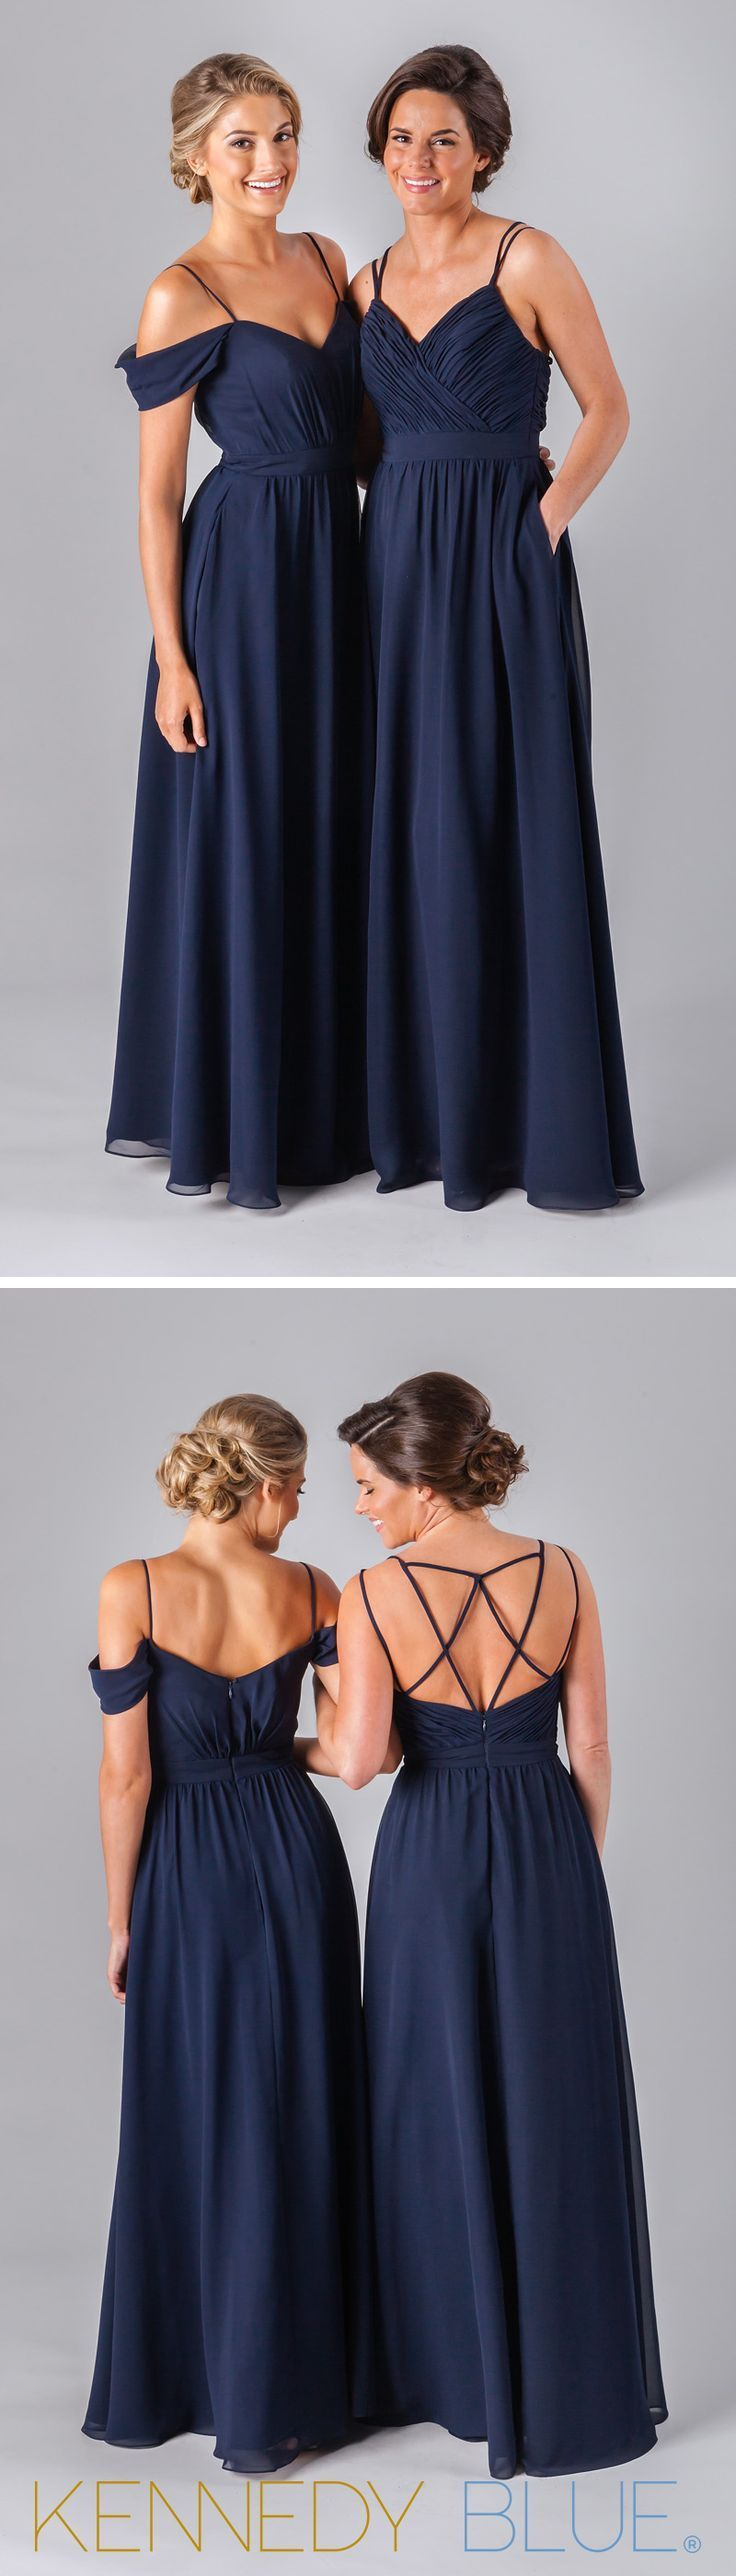 Best 25 long chiffon bridesmaid dresses ideas on pinterest pink mismatched different styles chiffon navy blue floor length a line formal cheap sexy bridesmaid dresses the long bridesmaid dresses are fully lined 4 bone ombrellifo Image collections